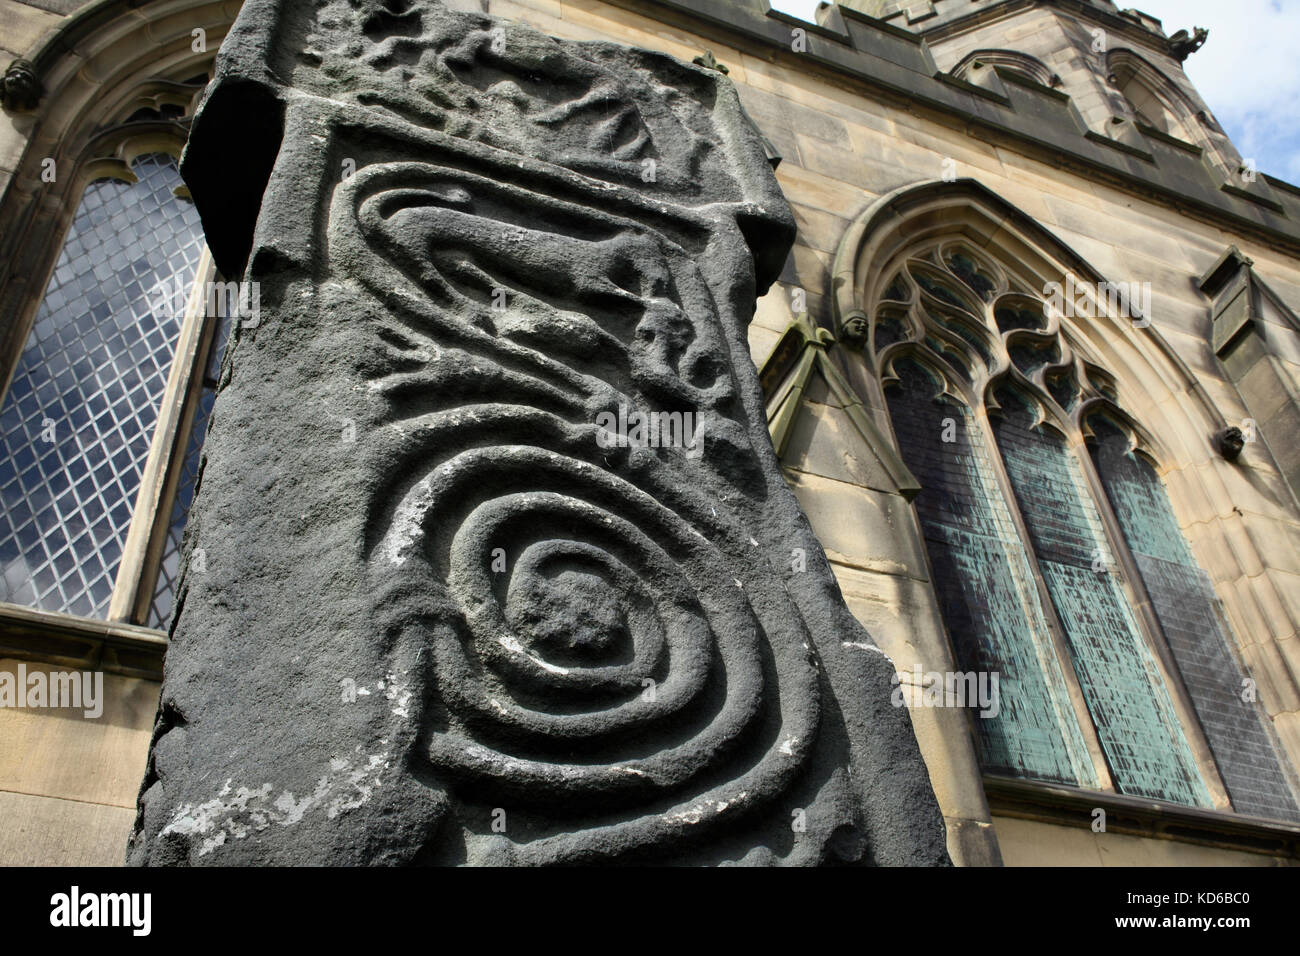 Anglo saxon stone carving stock photos